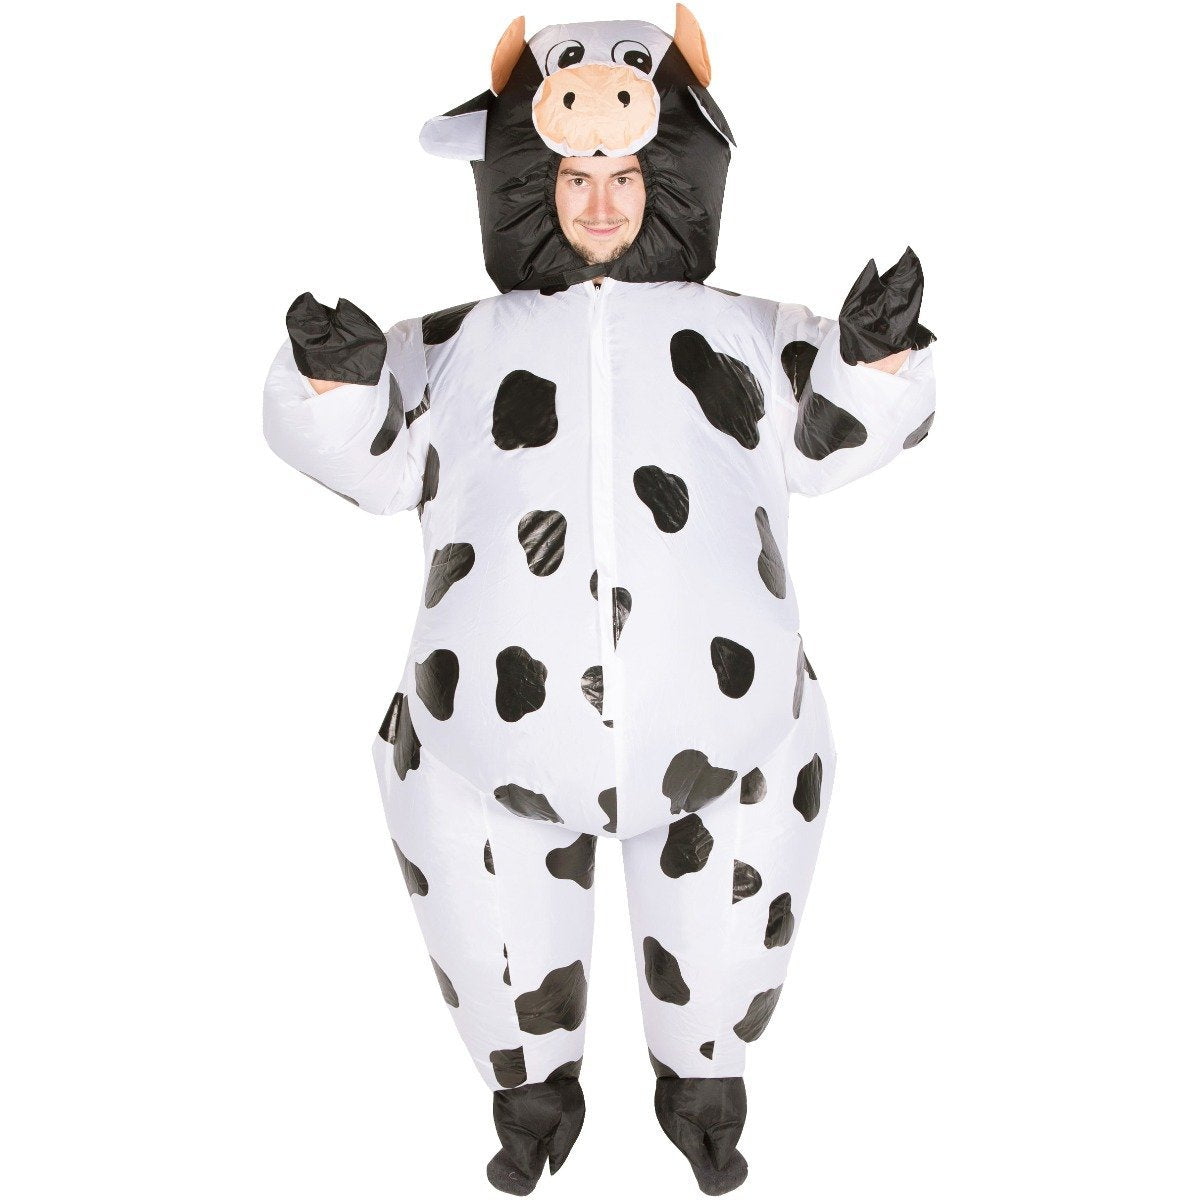 Bodysocks - Inflatable Cow Costume